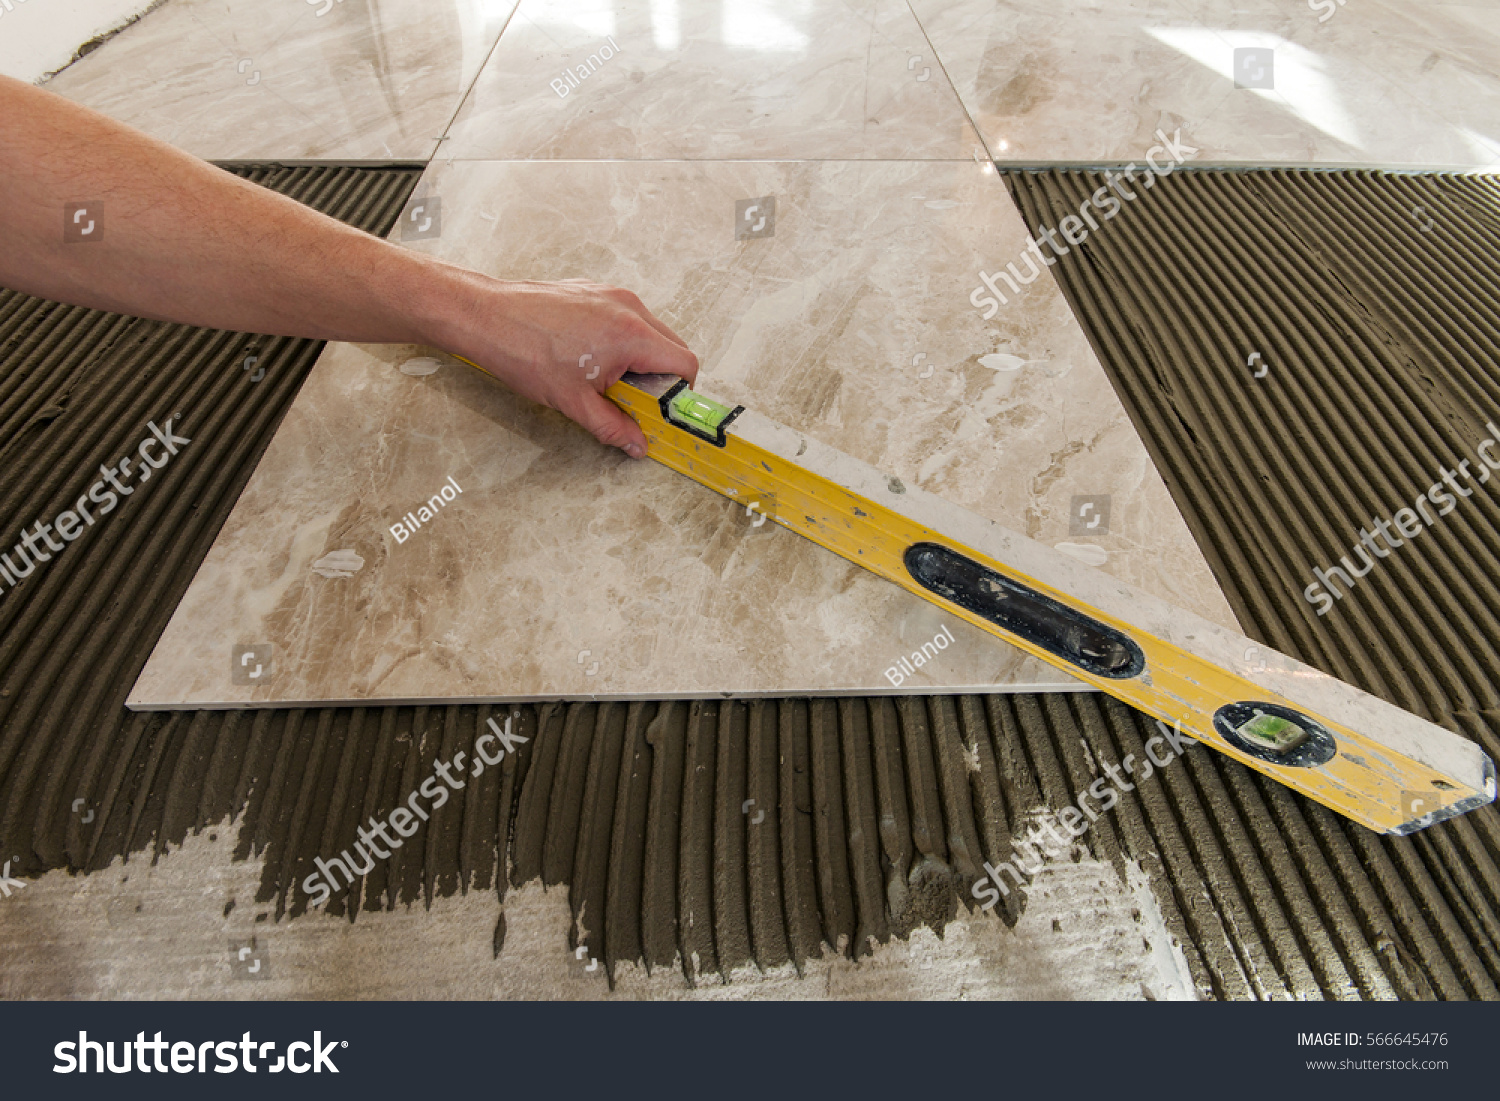 Ceramic Tiles Tools Tiler Floor Tiles Stock Photo Edit Now 566645476